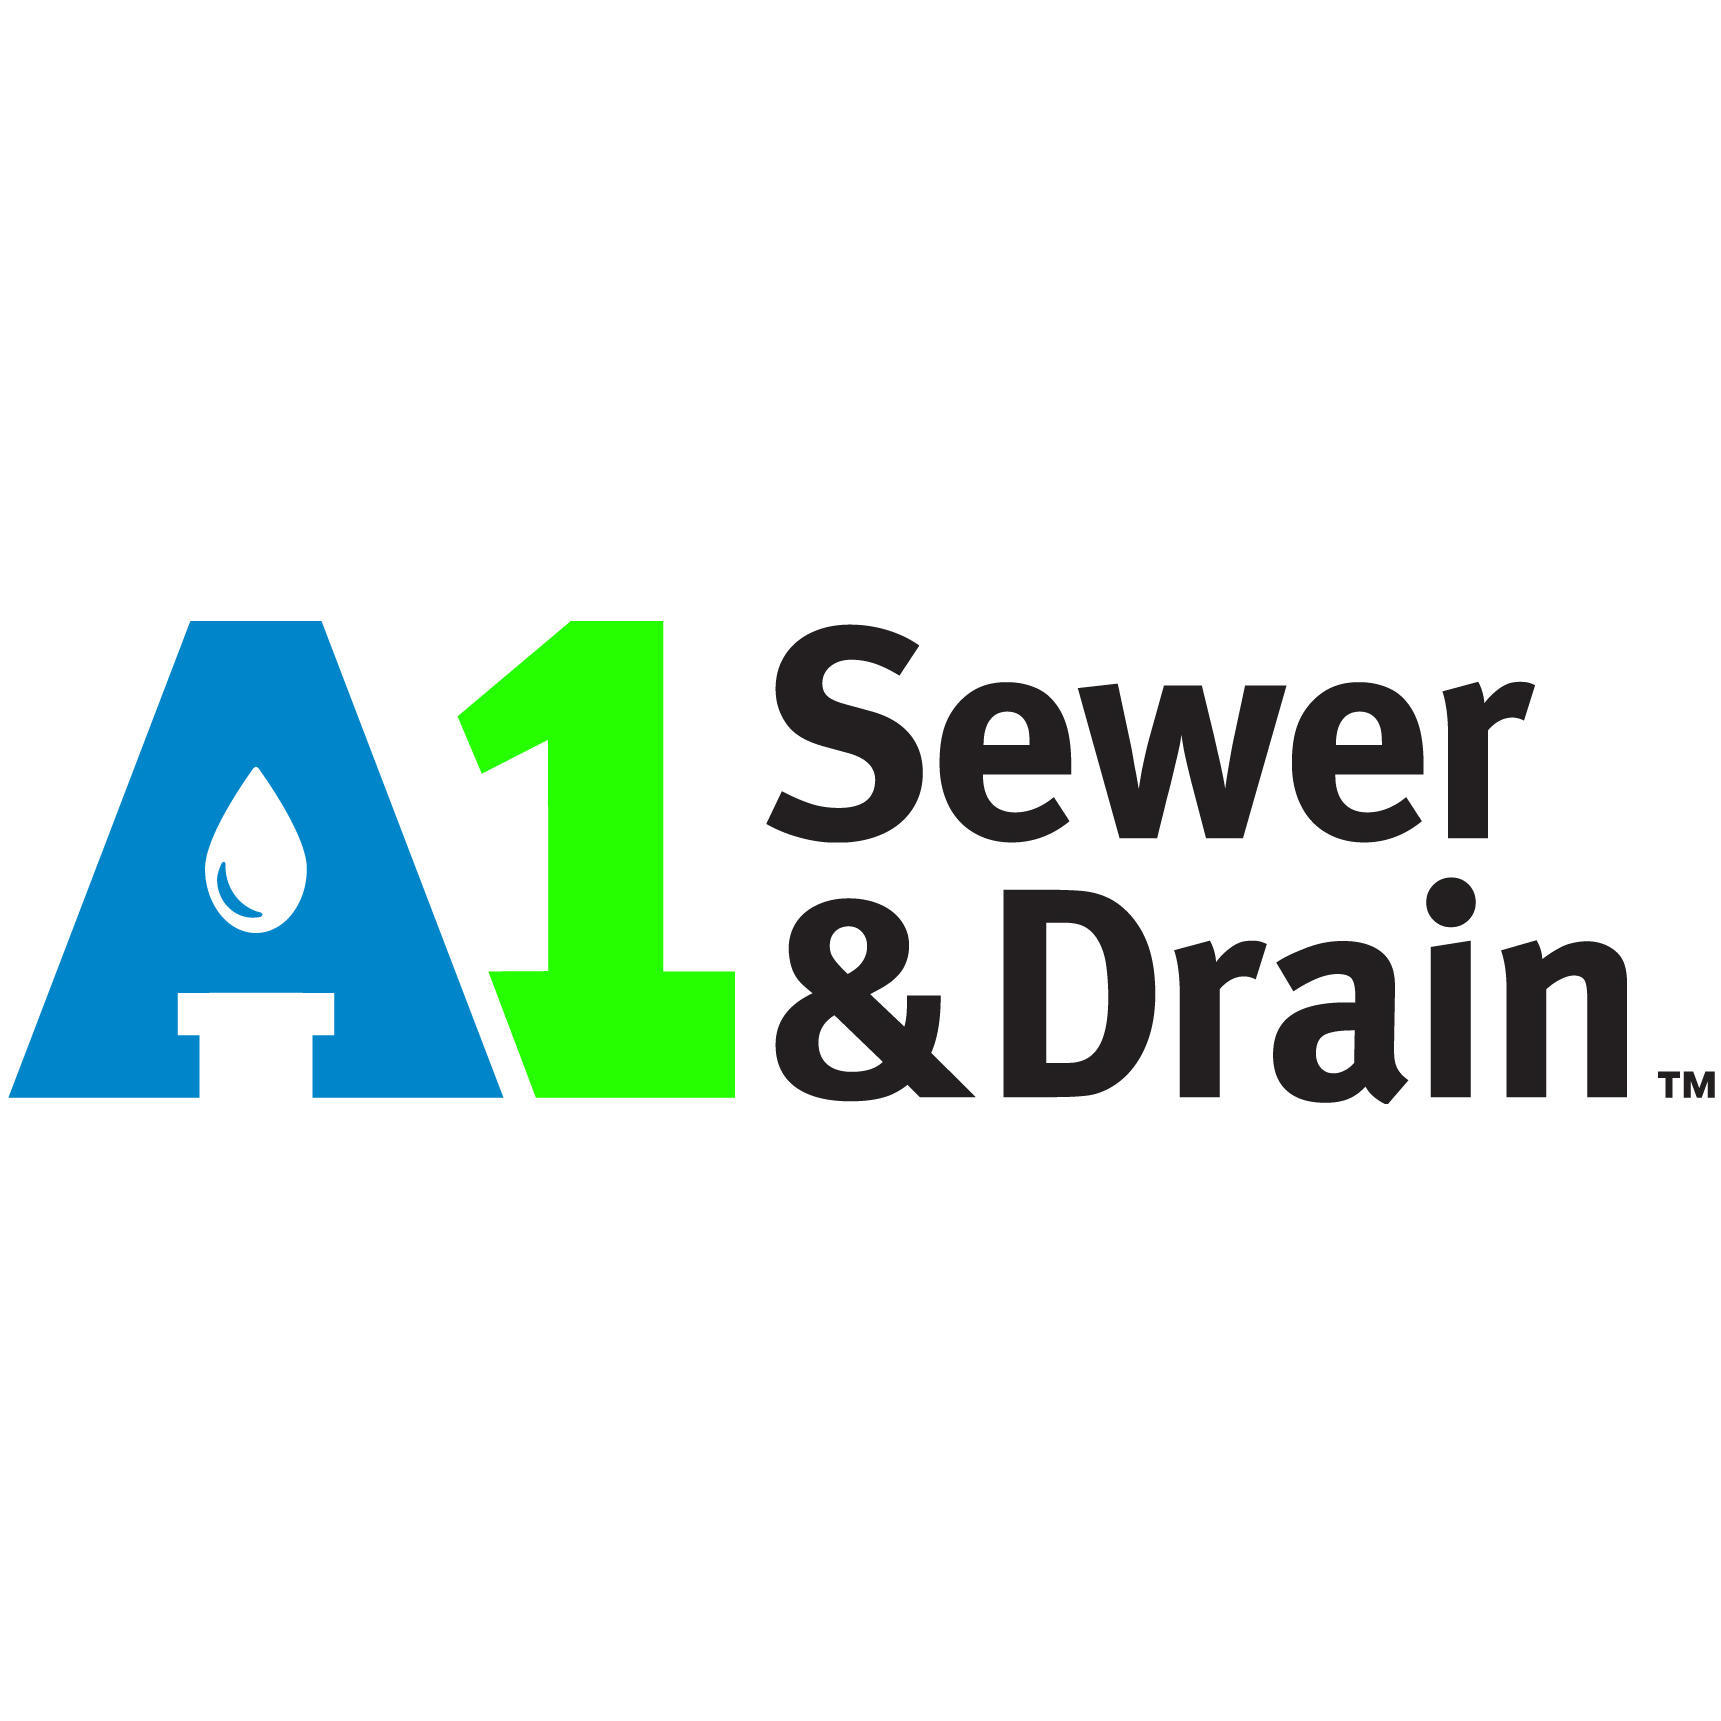 A-1 Sewer & Drain Plumbing and Heating